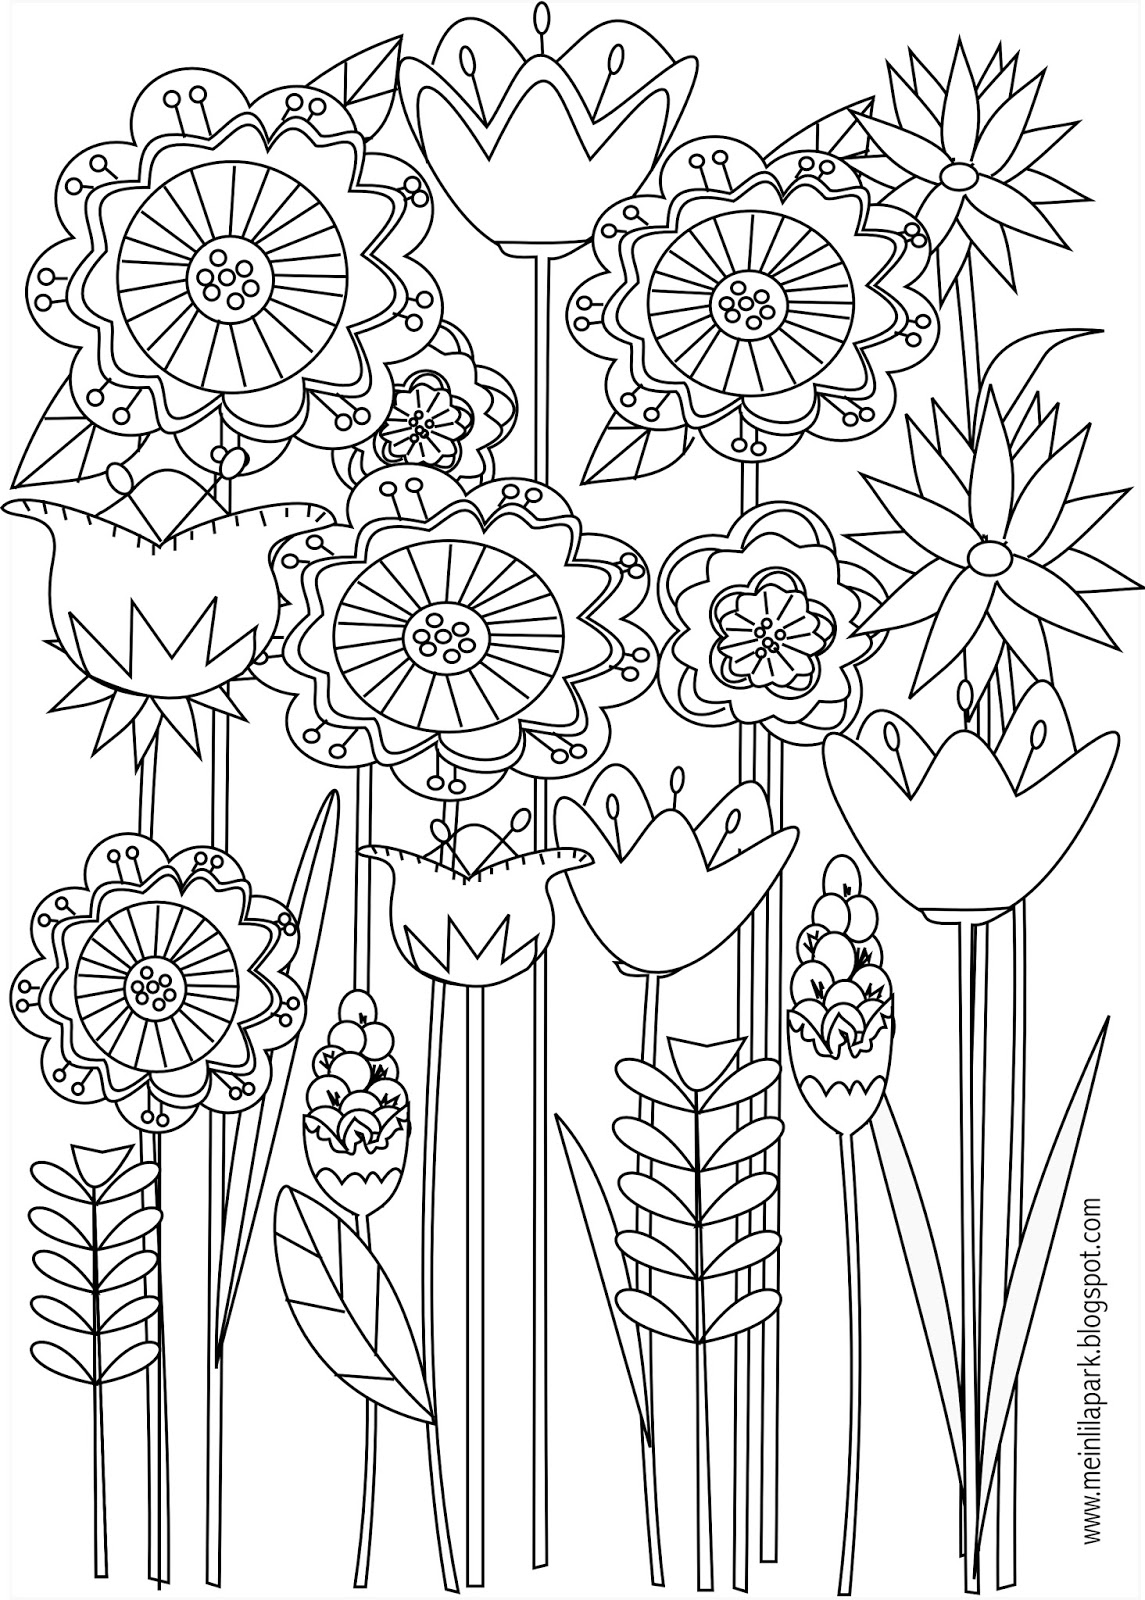 free printable flowers to color daisy flower outline free download on clipartmag flowers free printable to color